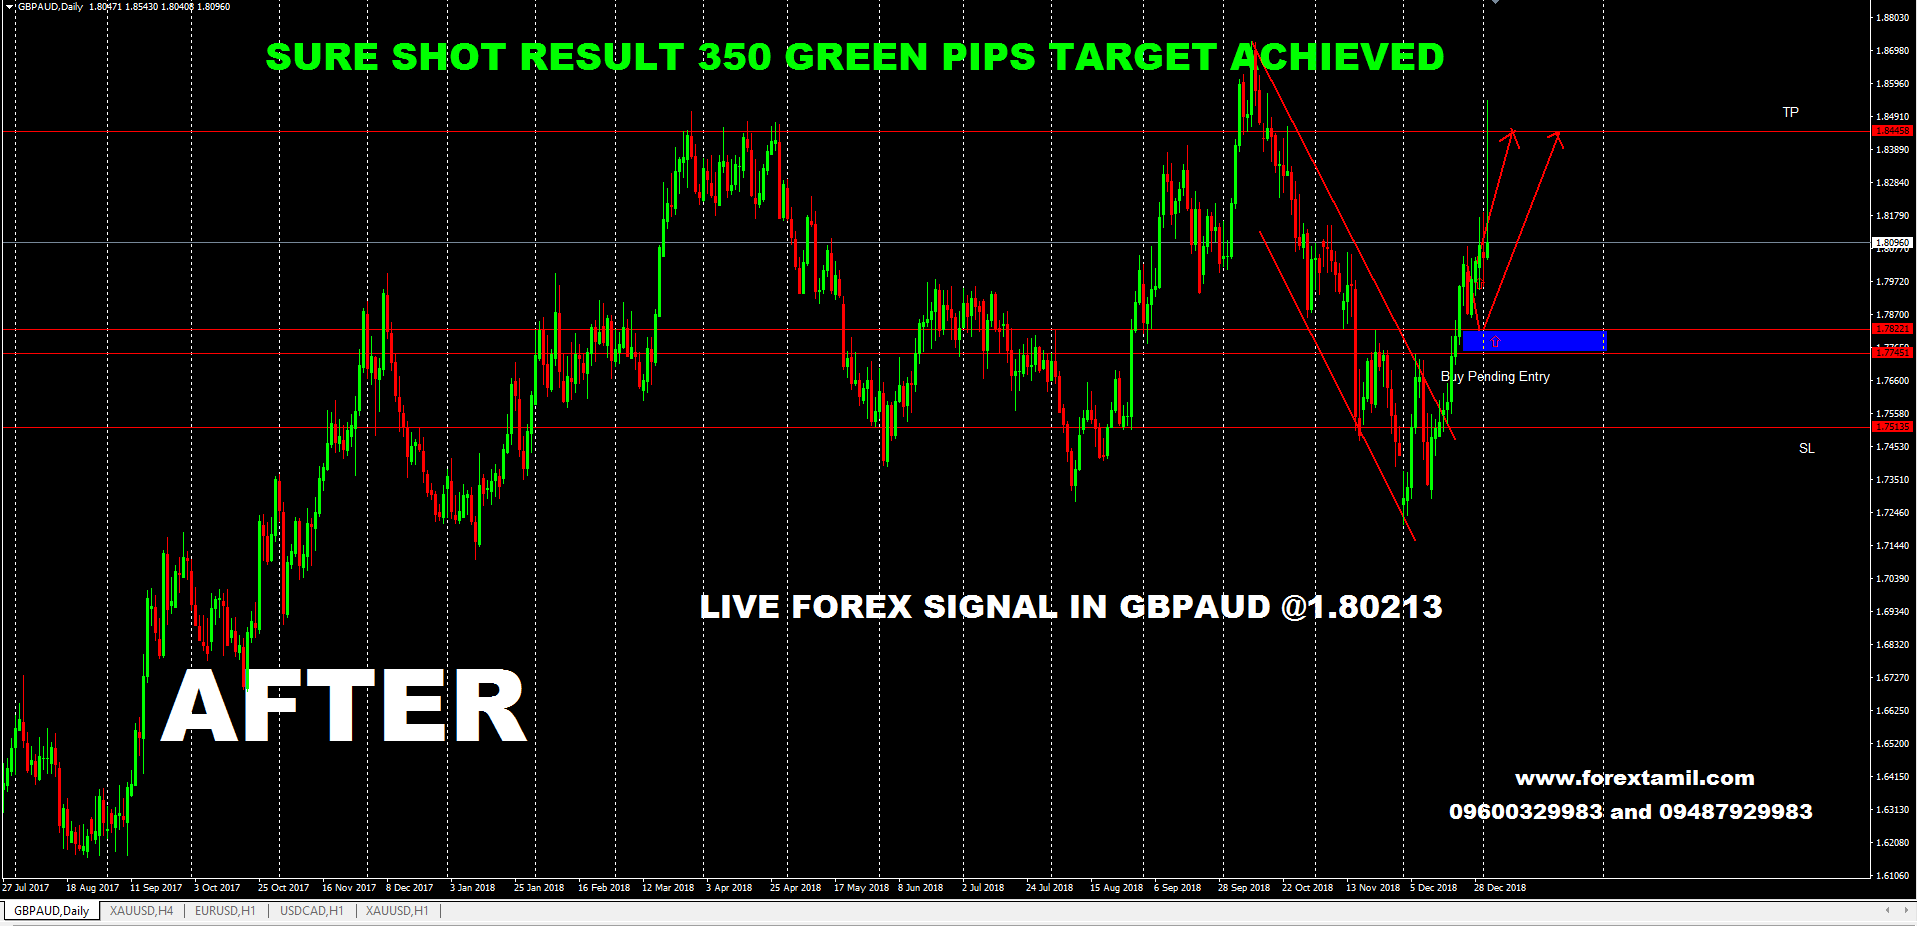 SURESHOT: GBPAUD GOT 350 GREEN PIPS!!-Massive.